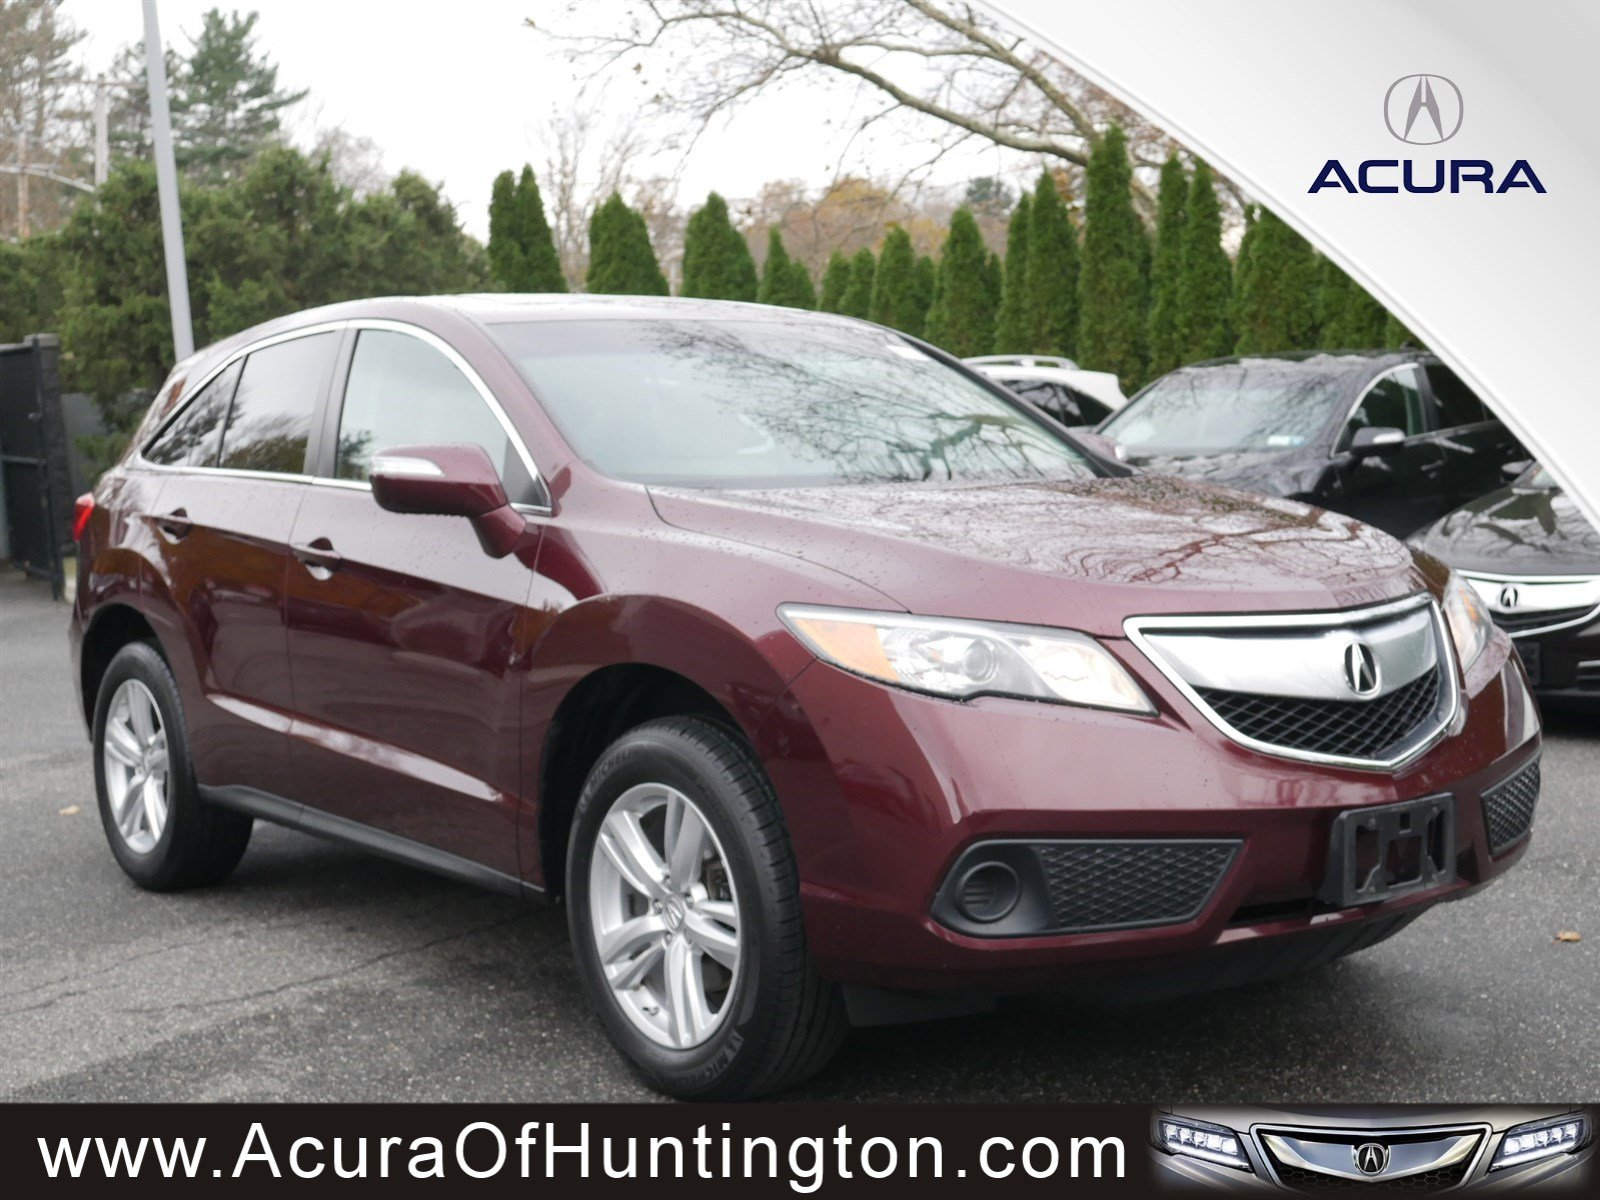 in wadvance fwd rdx utility pkg advance new acura columbus sport inventory w